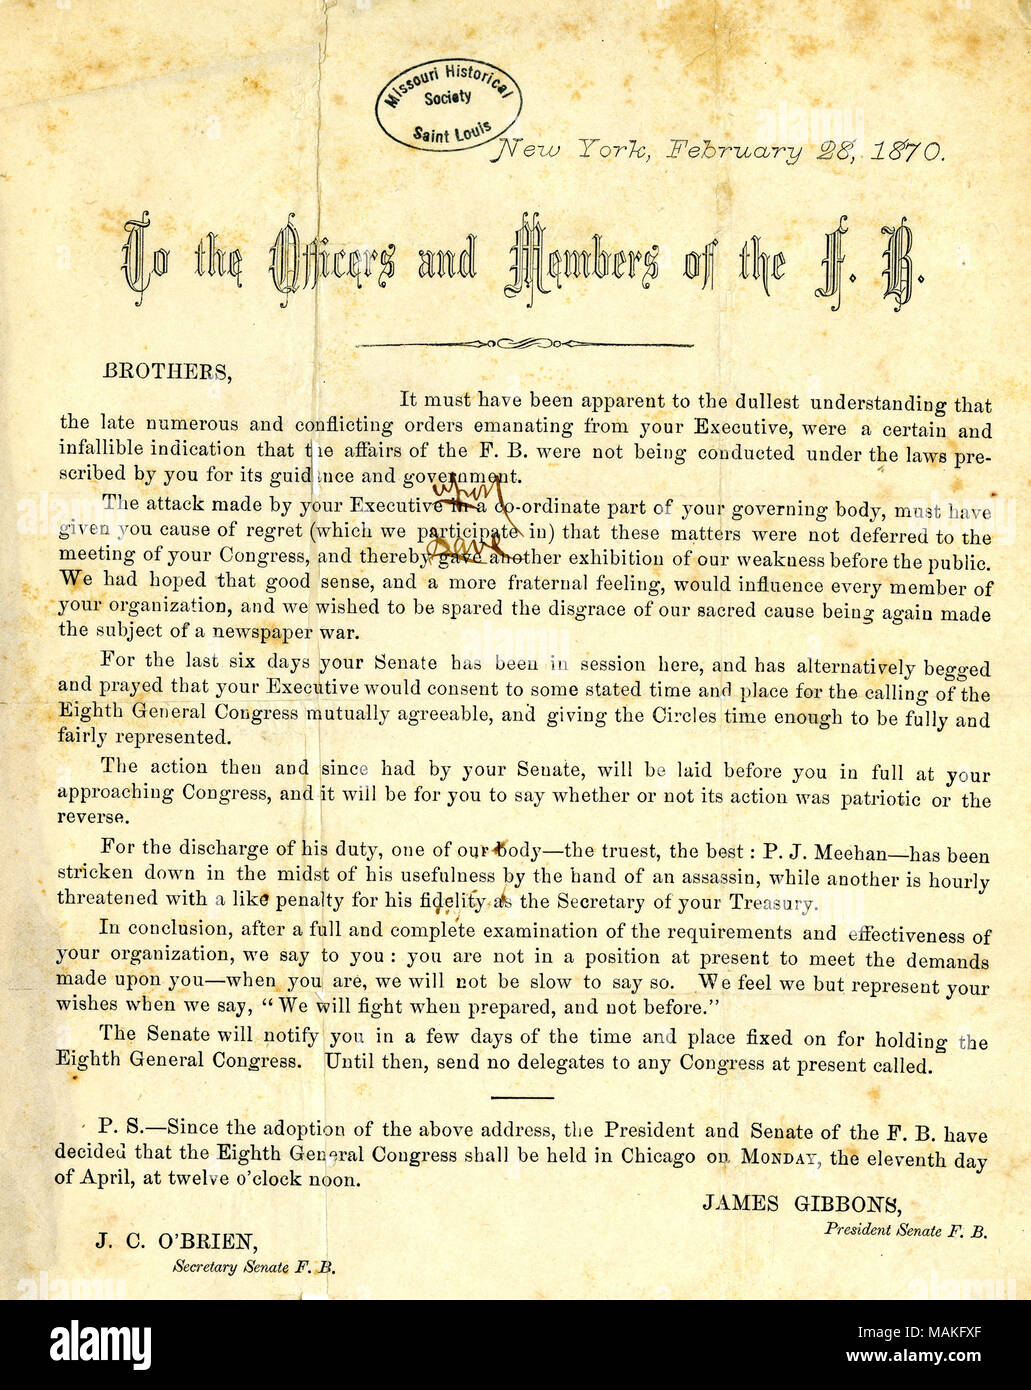 Title circular letter of james gibbons and j c obrien to the title circular letter of james gibbons and j c obrien to the officers and members of the fenian brotherhood new york february 28 1870 thecheapjerseys Choice Image